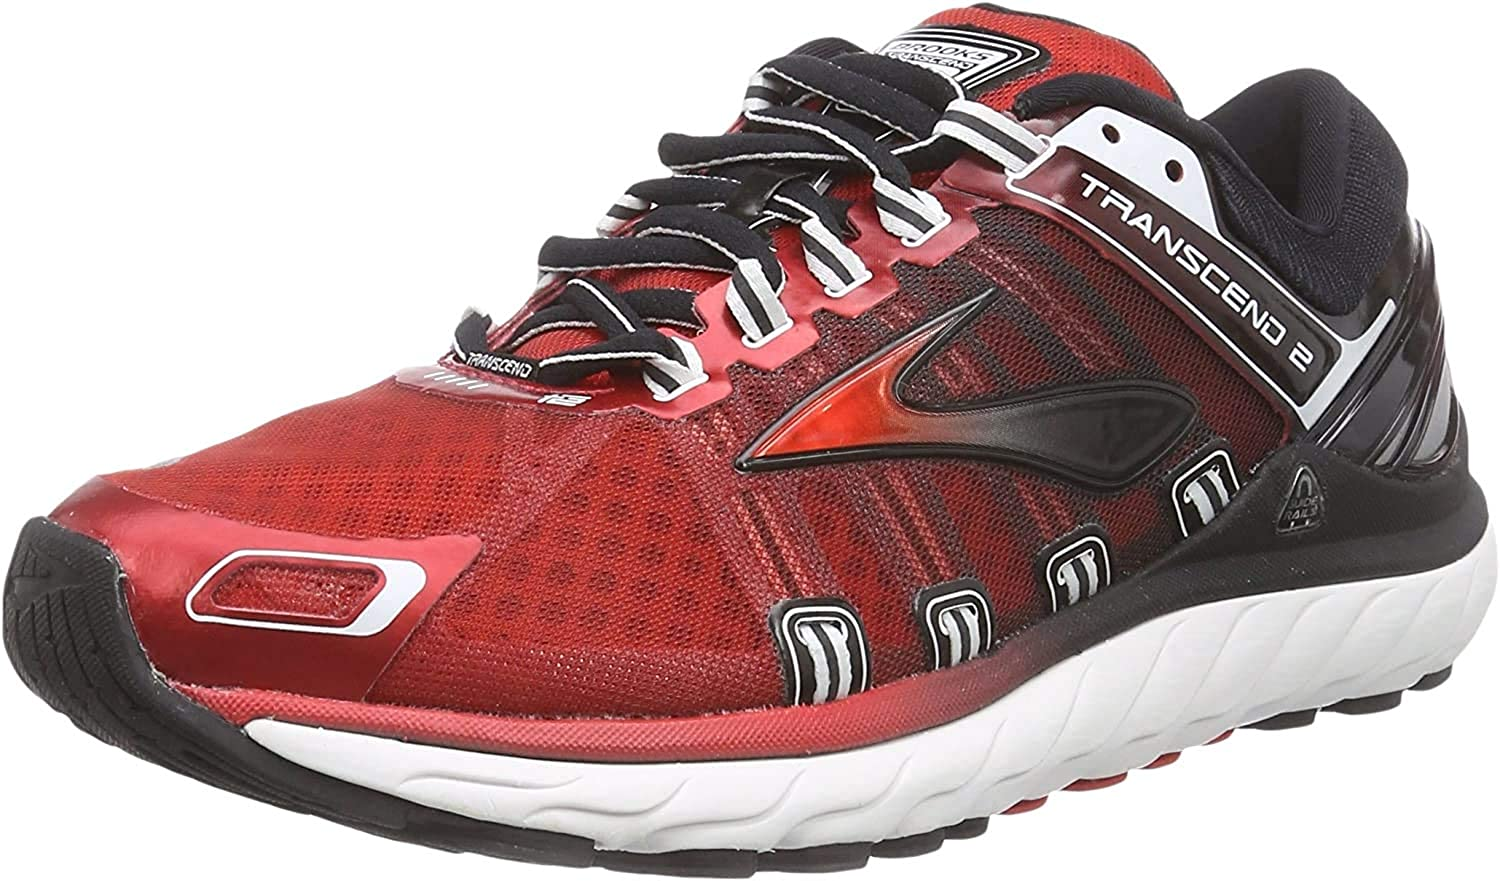 BrooksTranscend 2 - Zapatillas de Running Hombre, High Risk Red/Black/White, 40: Amazon.es: Zapatos y complementos